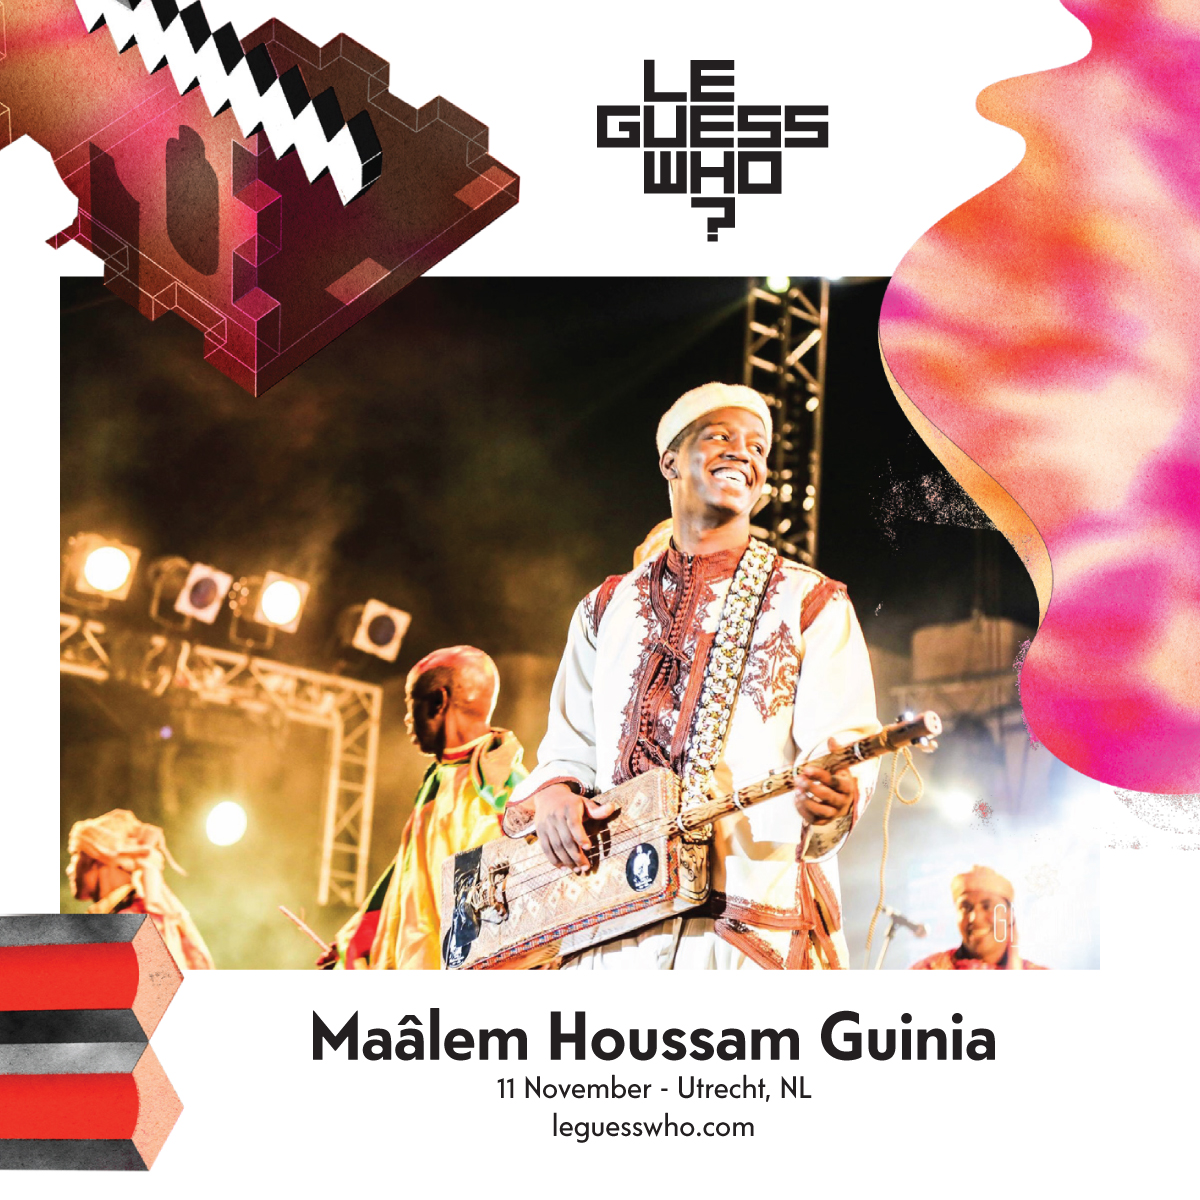 Meet Moroccan Gnawa master Maâlem Houssam Guinia, curated by James Holden for LGW17